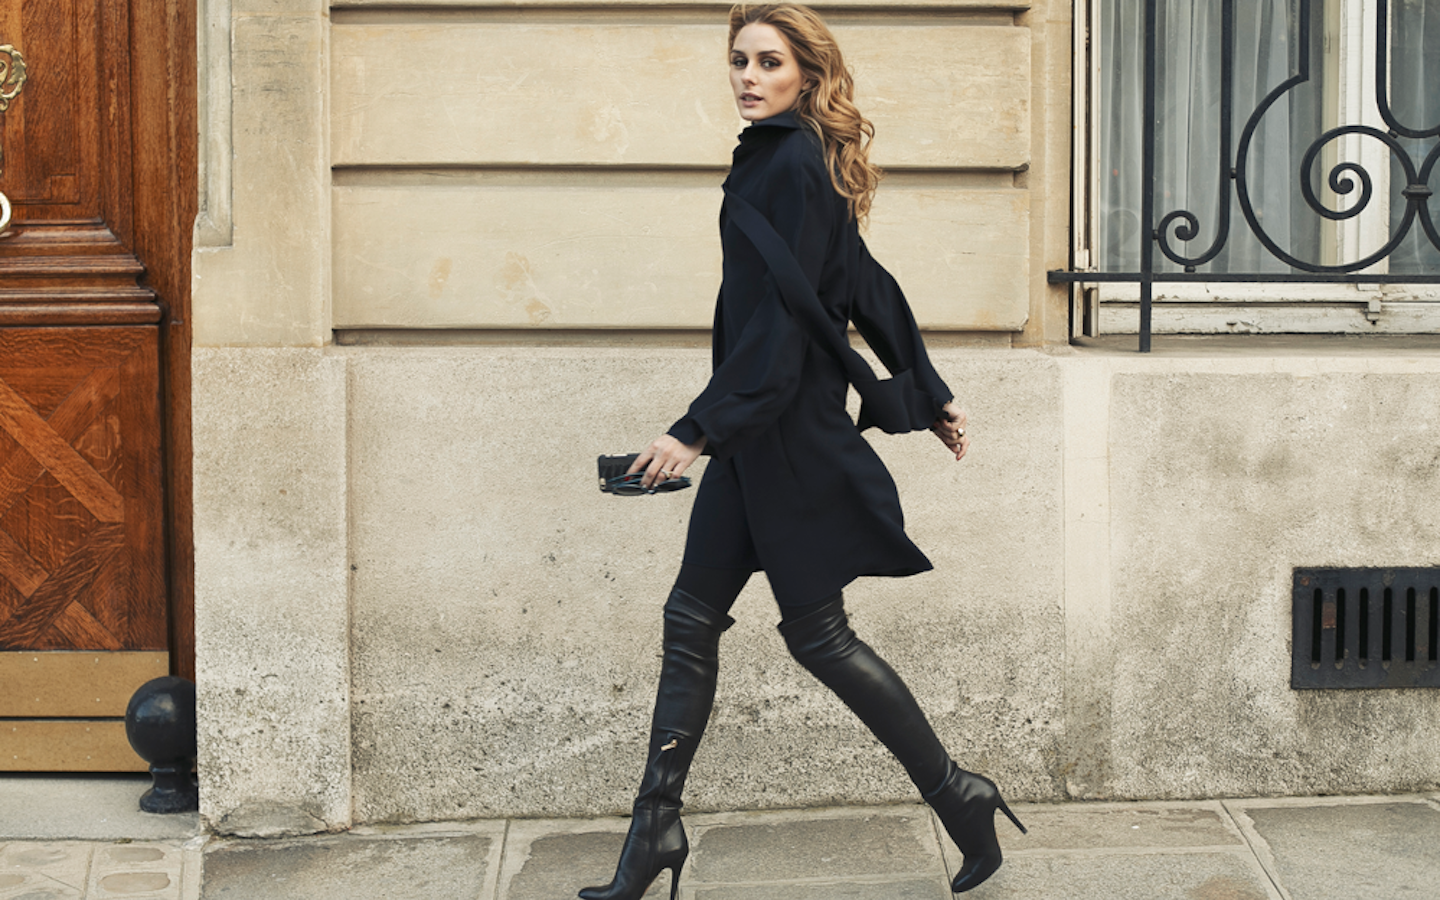 Modern day style muse: Olivia Palermo